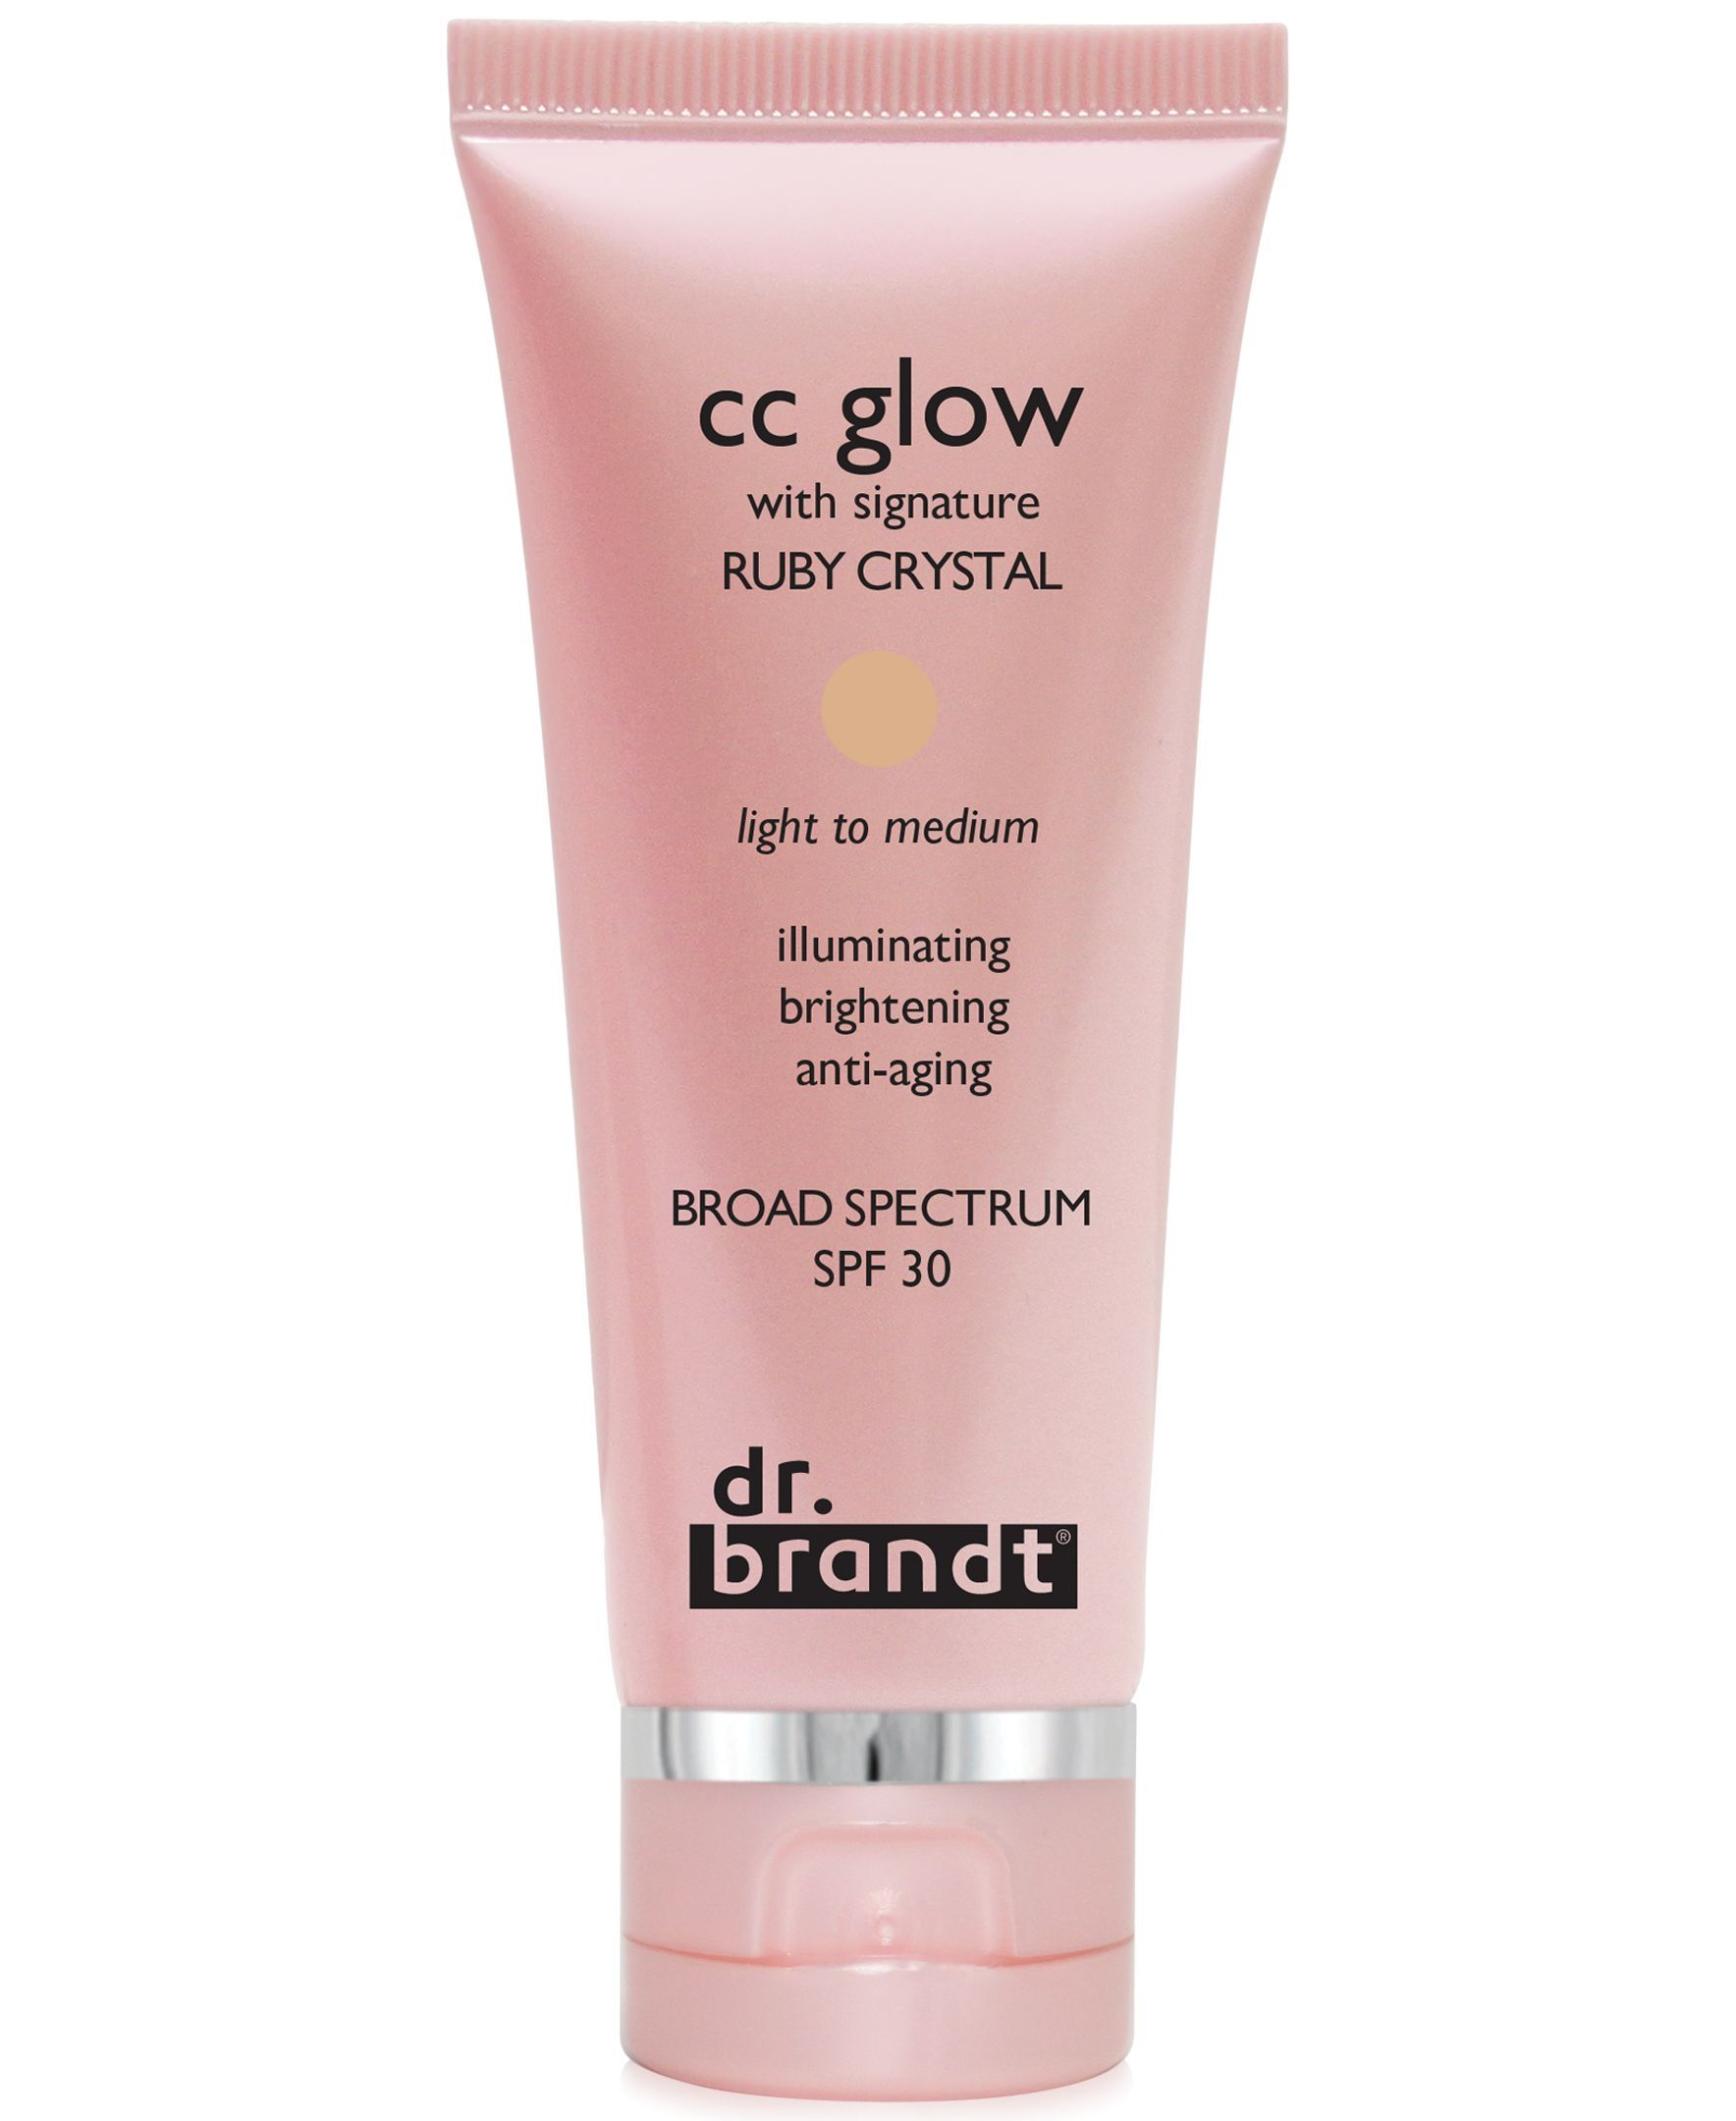 dr  brandt Cc glow with signature Ruby Crystal, 1 oz | MAKEUP